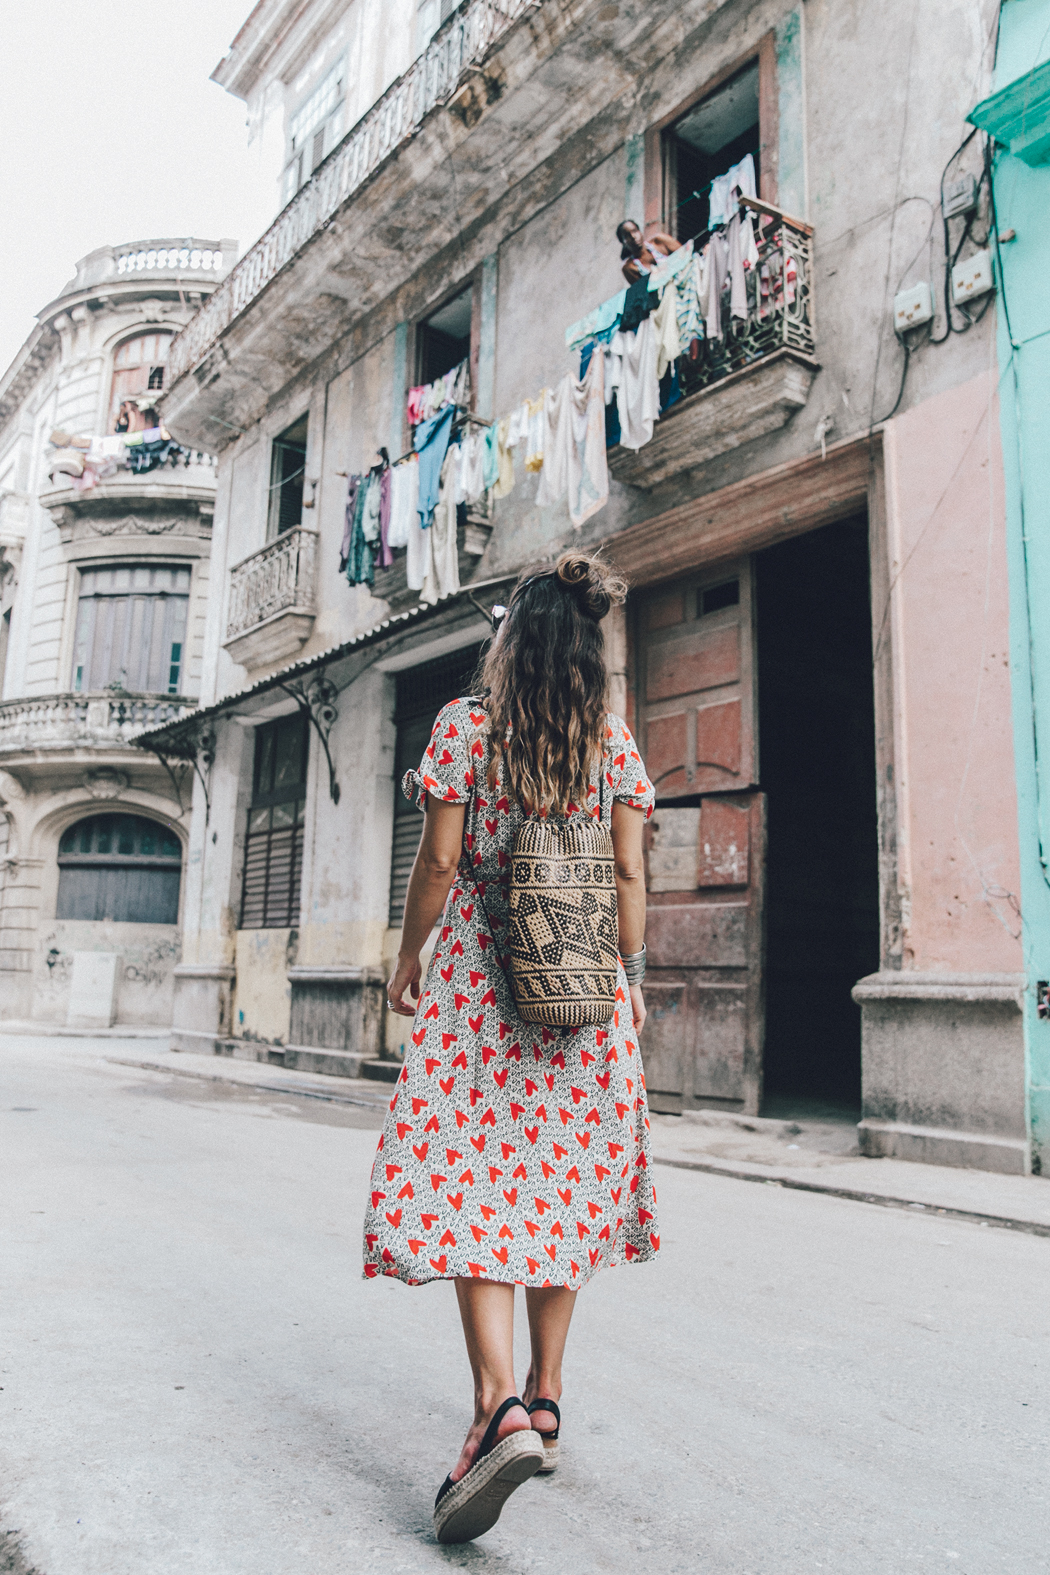 Cuba-La_Habana_Vieja-Hearts_Dress-Styled_By_Me-Aloha_Espadrilles-Outfit-Street_Style-Dress-Backpack-40